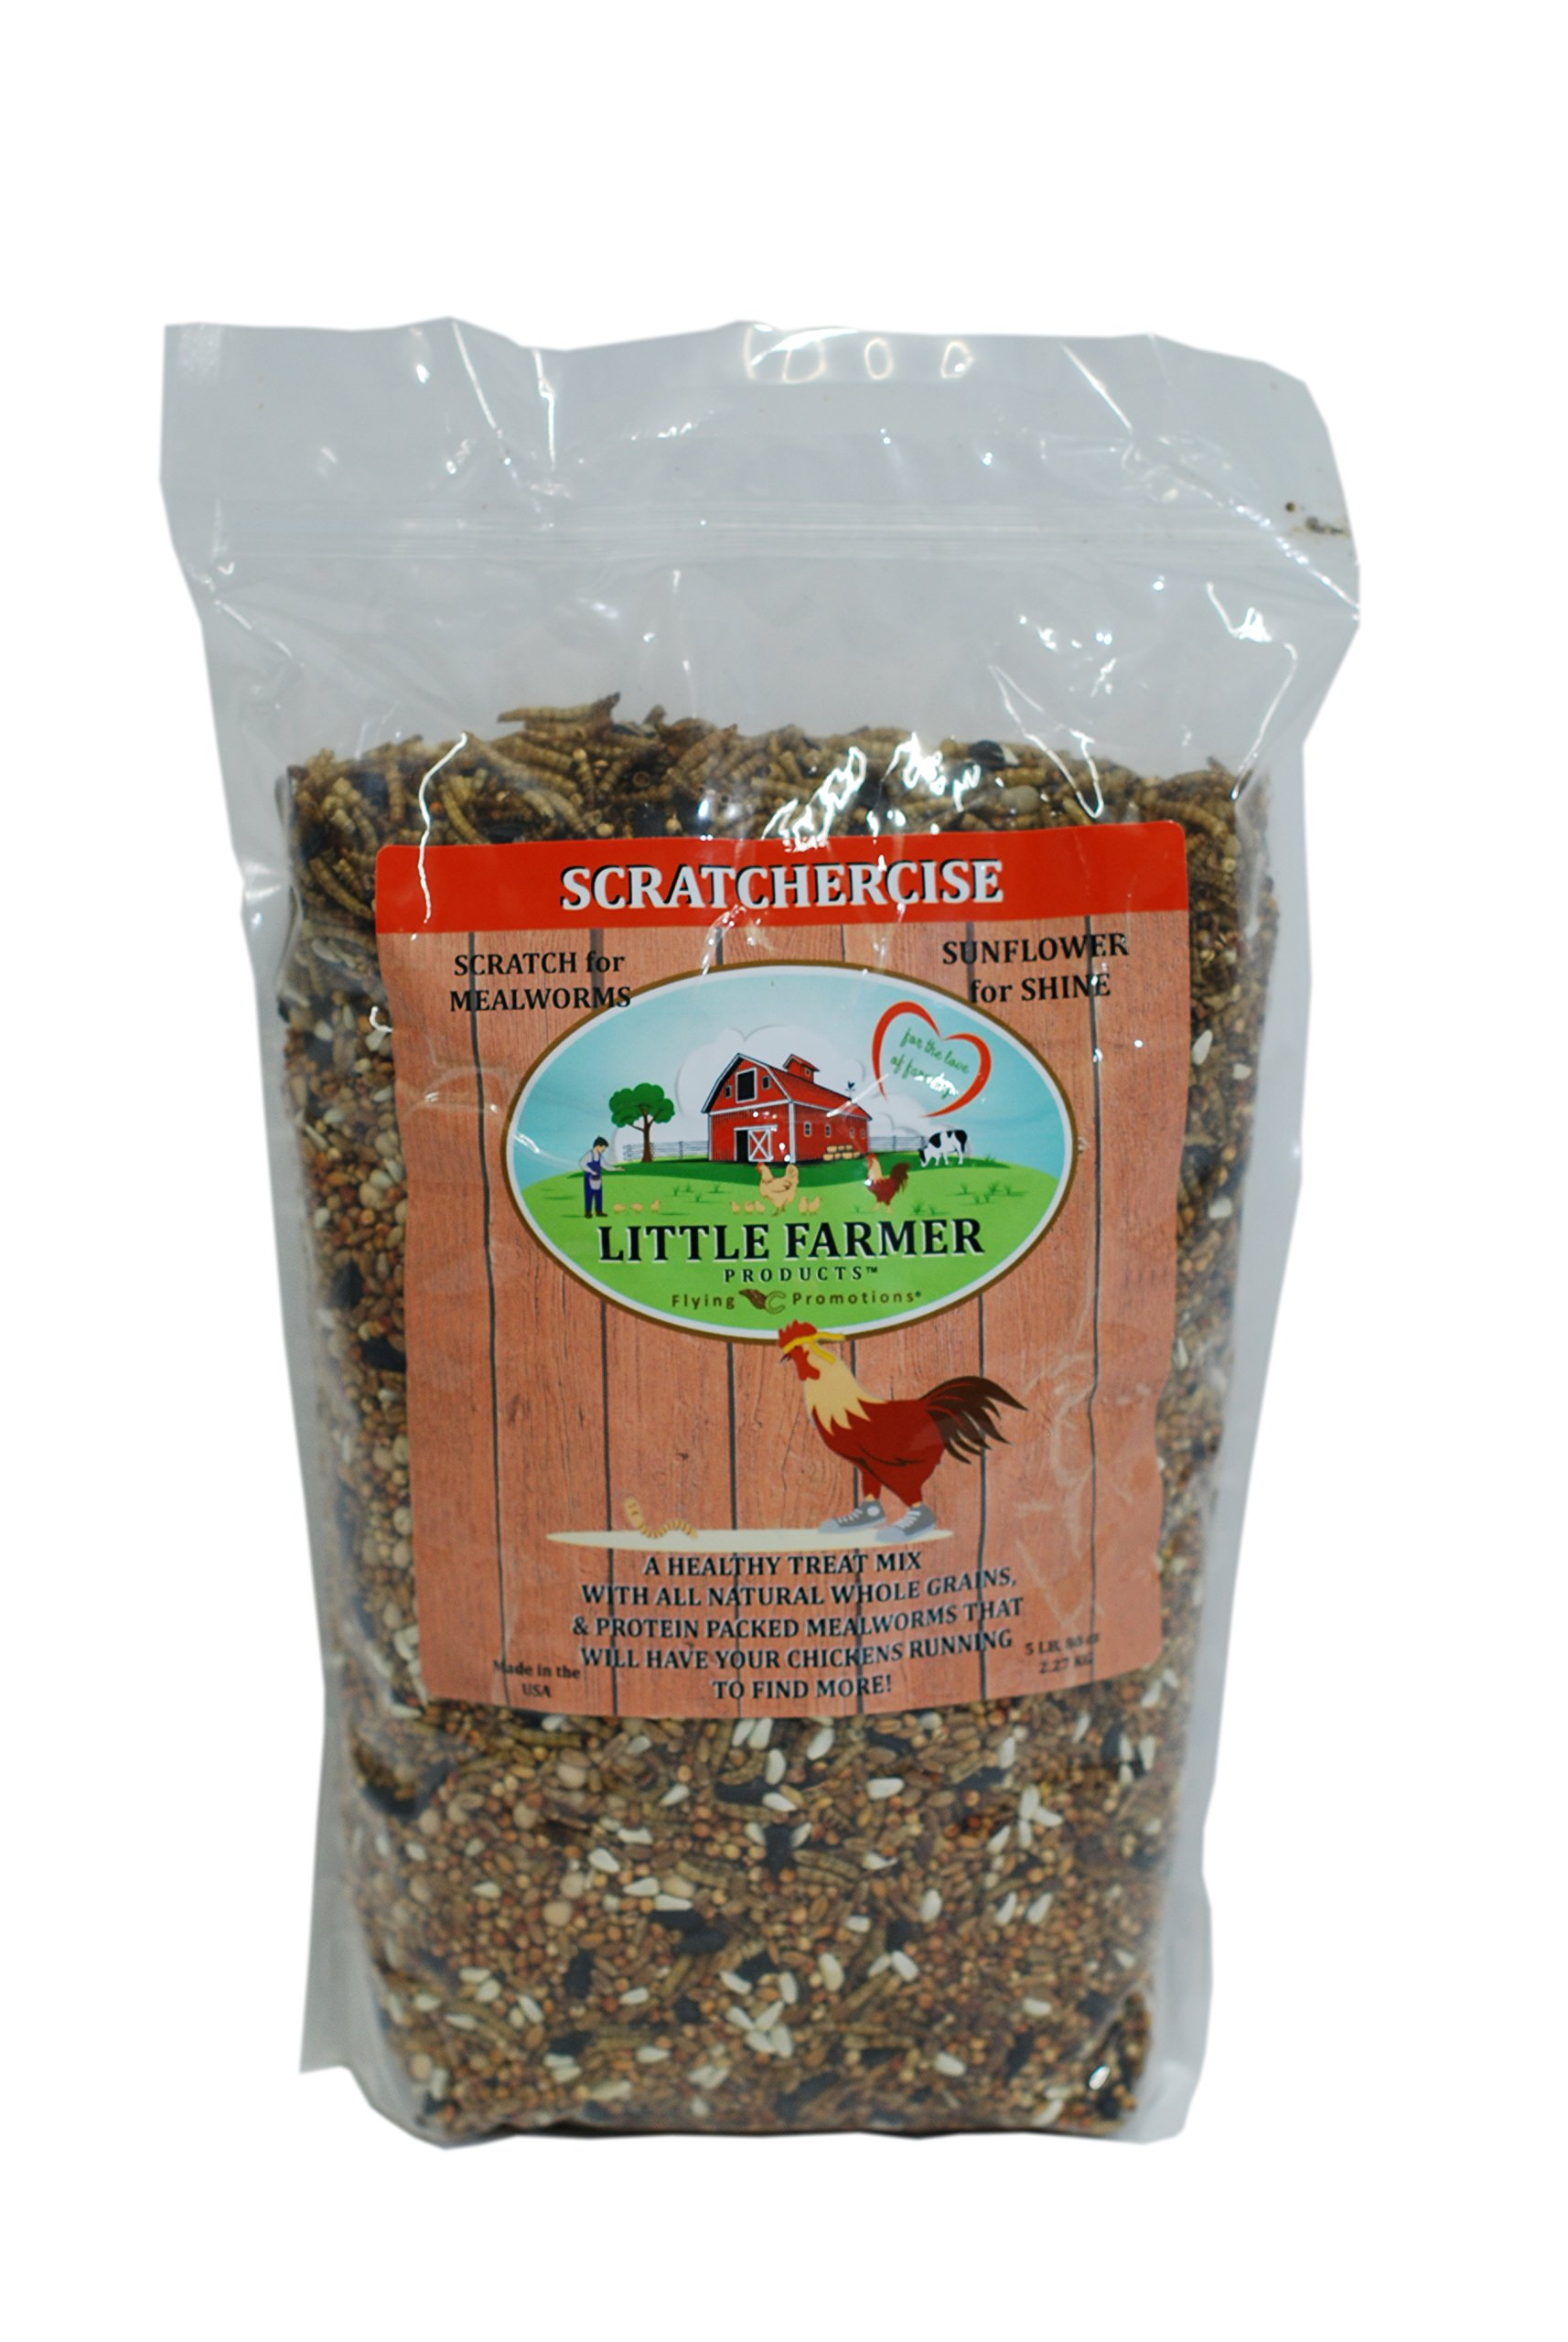 LITTLE FARMER PRODUCTS SCRATCHERCISE Premium Chicken Poultry Free-Range Scratch Treat Mix | Wheat, Milo, Peas, Sunflower, Safflower, Flax, Mealworms (5 lbs) by LITTLE FARMER PRODUCTS